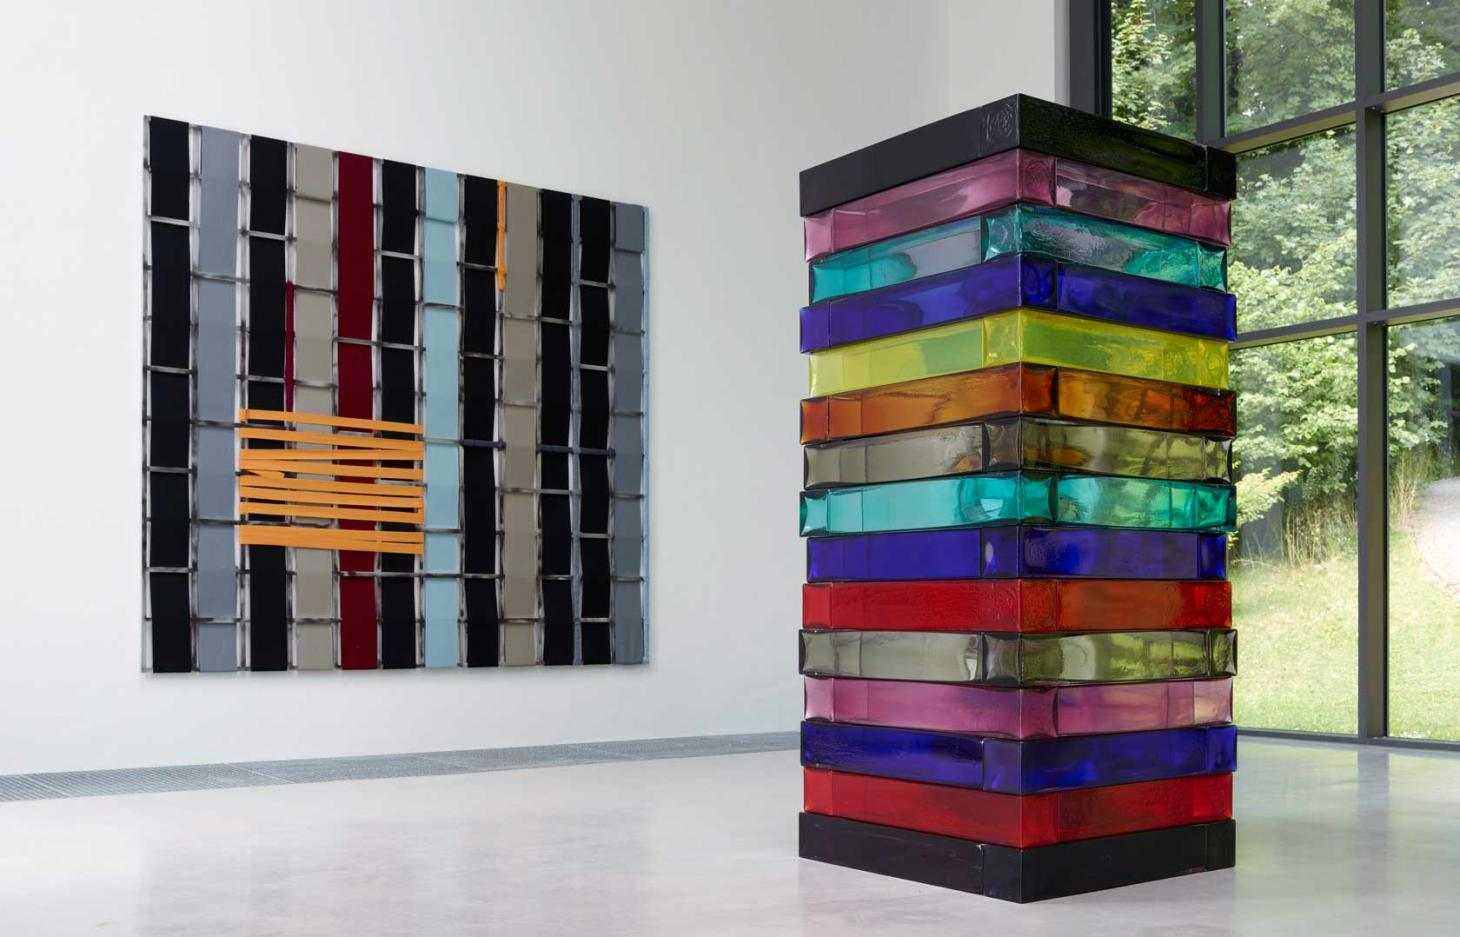 Installation view of Sean Scully's exhibition at Waldfrieden Sculpture Park in Germany featuring his glass piece Stack